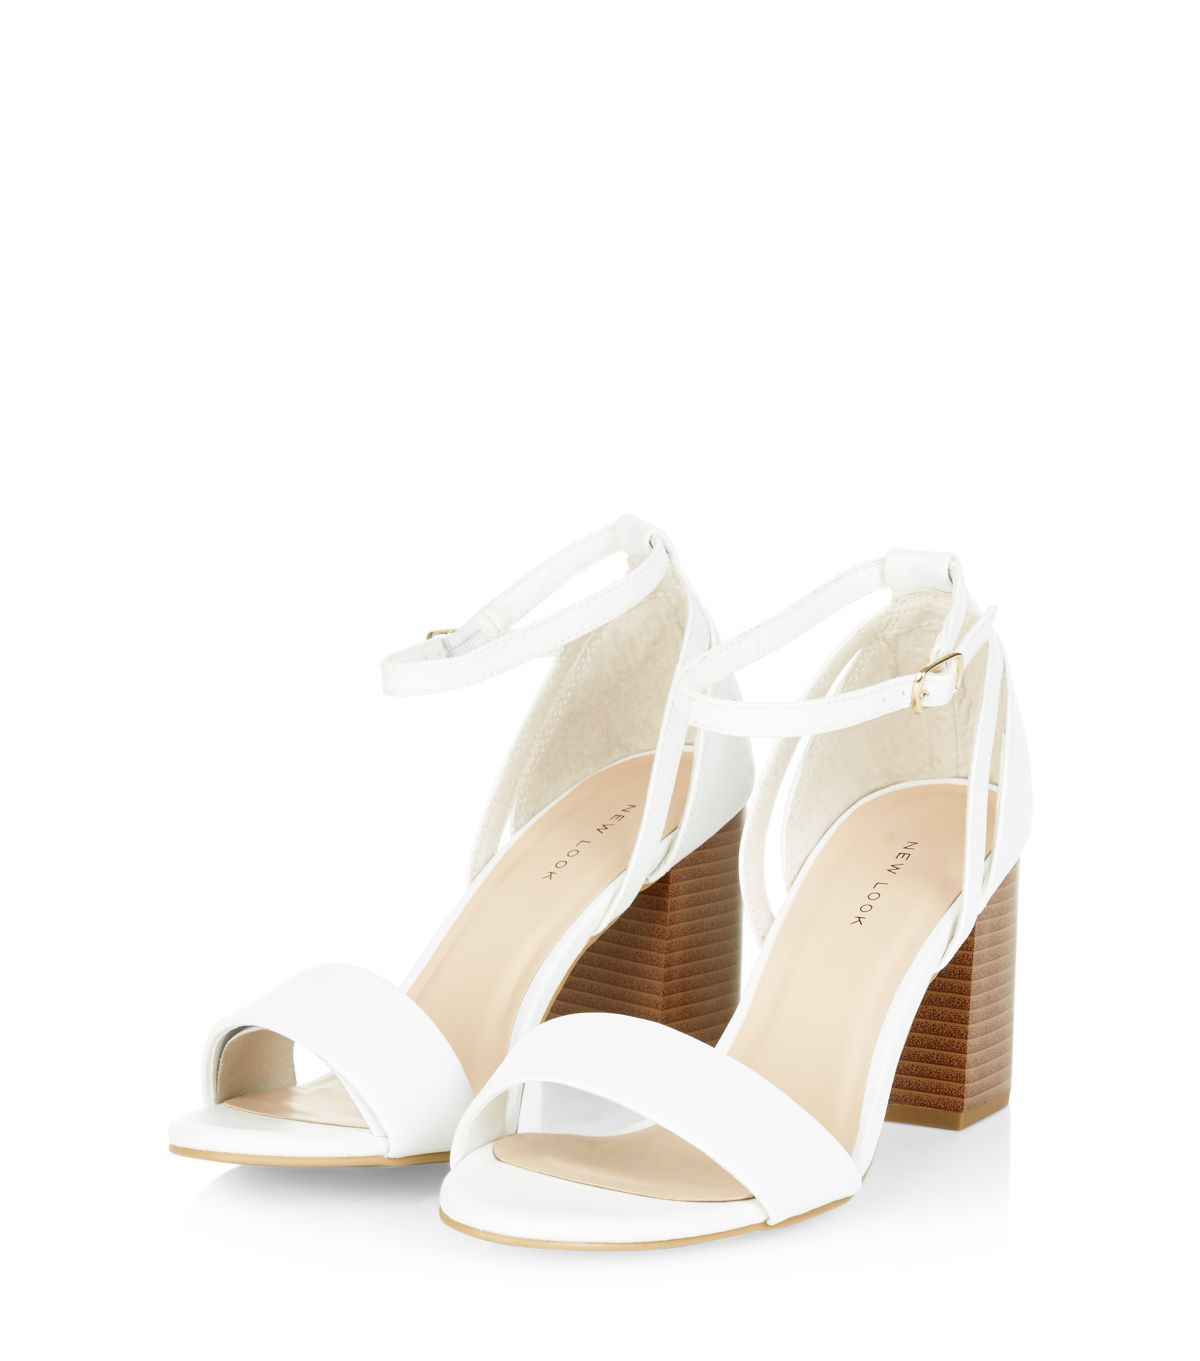 46a4f582f6c7 White Ankle Strap Block Heel Sandals